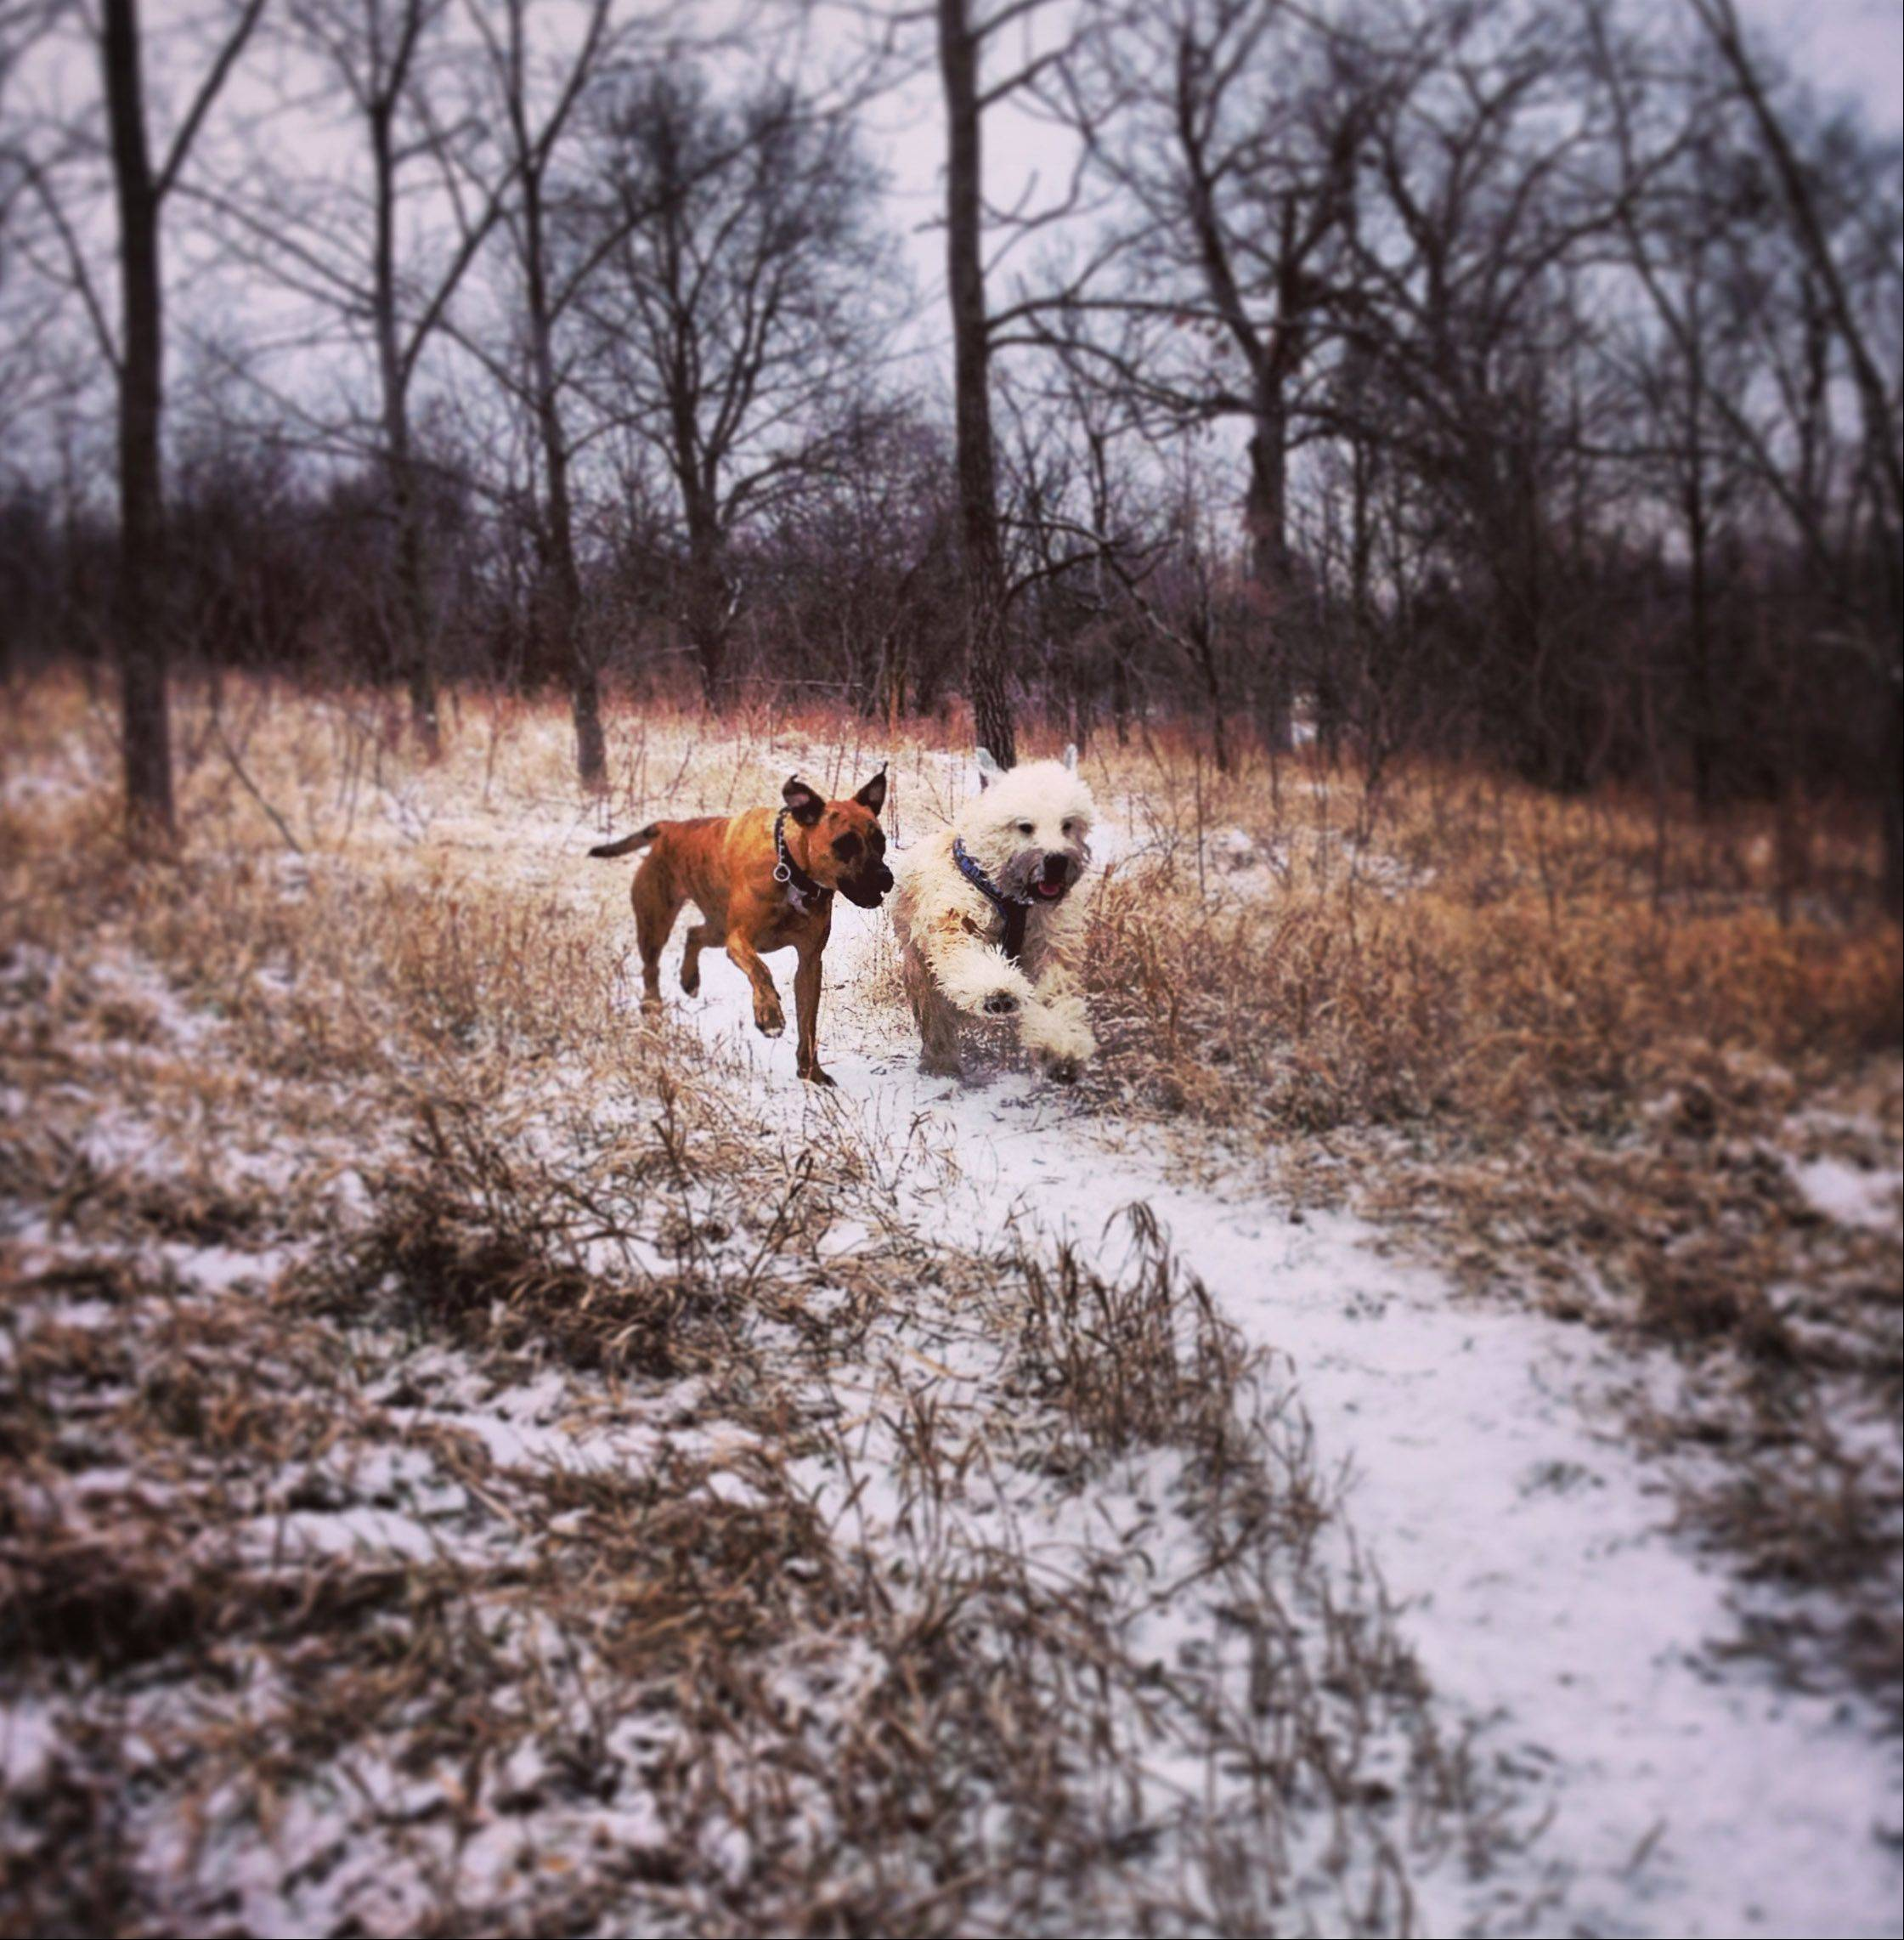 Eddie, right, and Chula run together at Fox River Bluff Dog Park in St. Charles after a light snow shower in December.